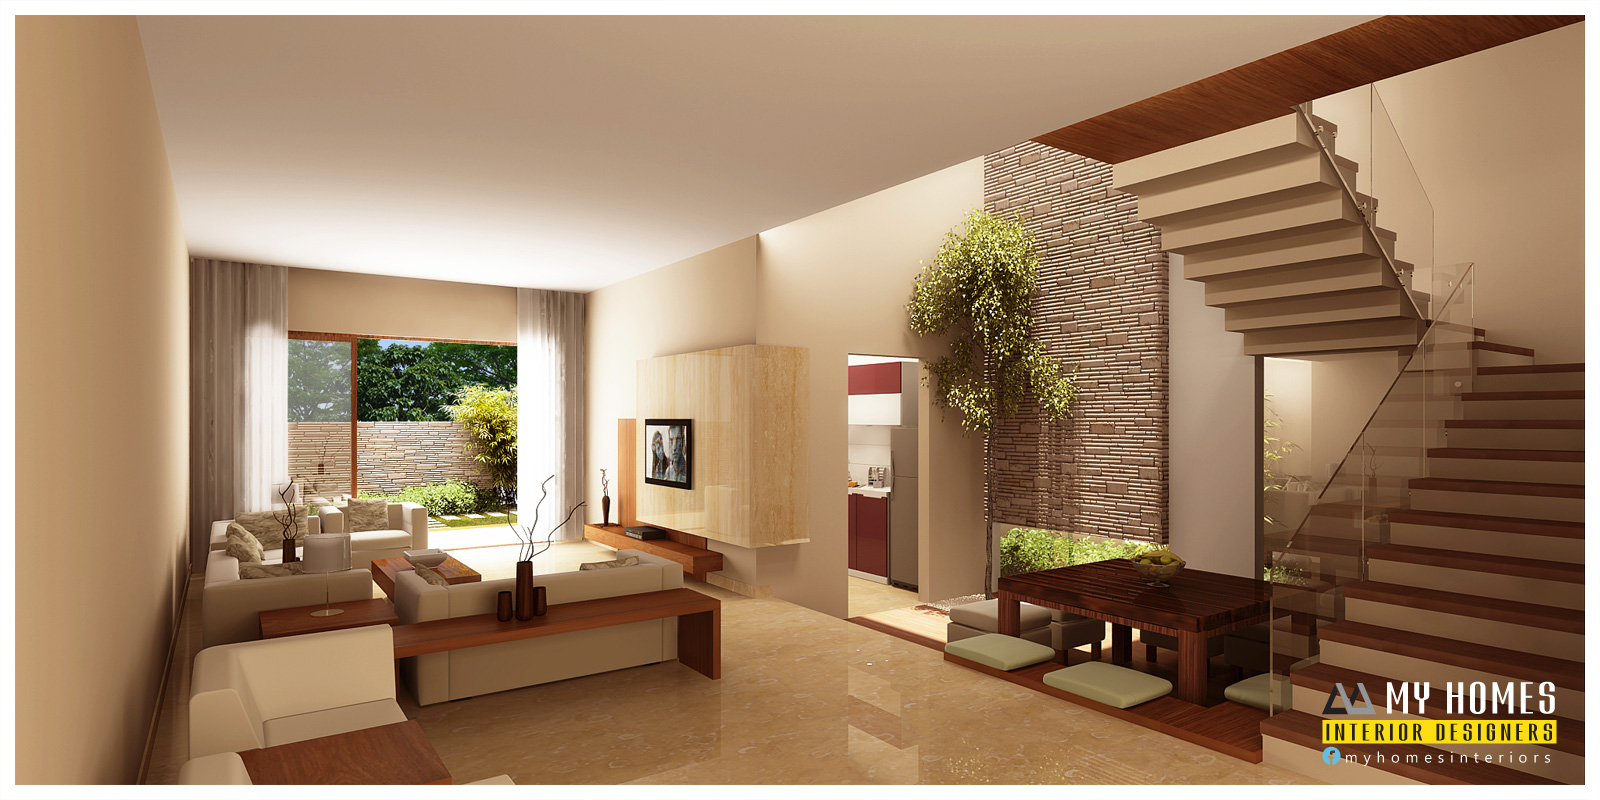 Kerala Interior Designs Ideas For Modern Homes House Part 12